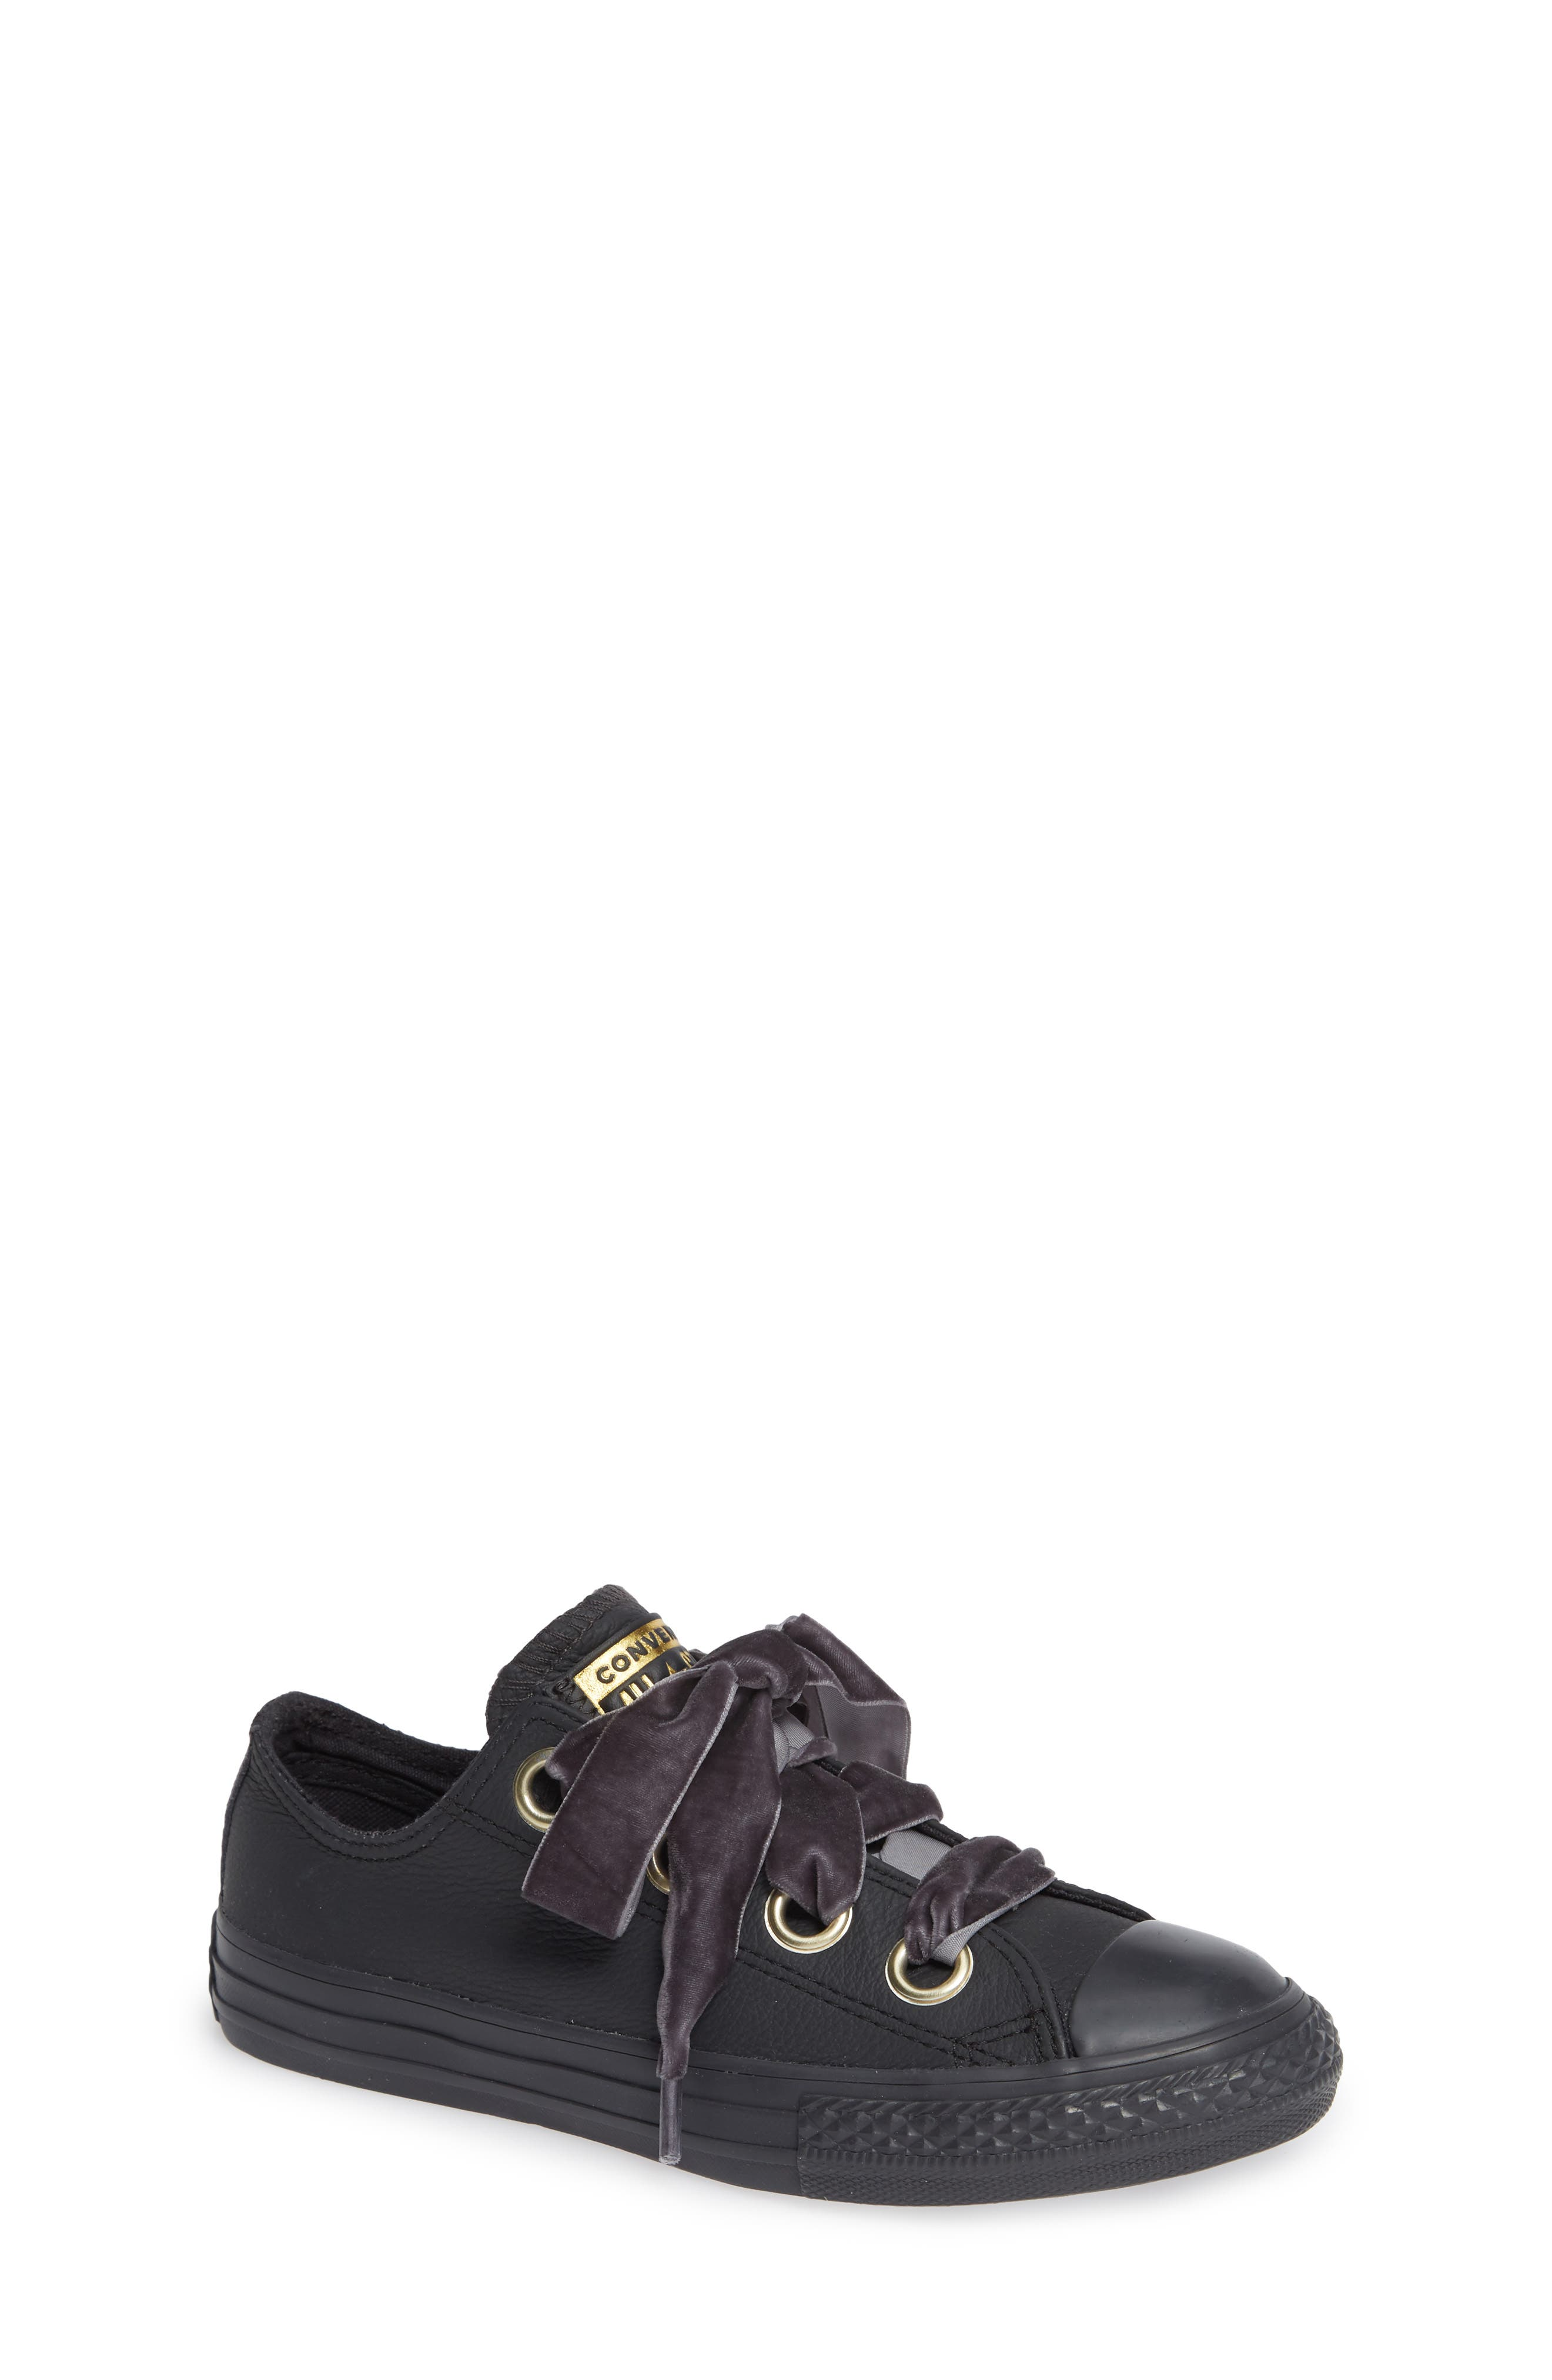 Chuck Taylor<sup>®</sup> All Star<sup>®</sup> Big Eyelet Leather Sneaker,                             Main thumbnail 1, color,                             BLACK